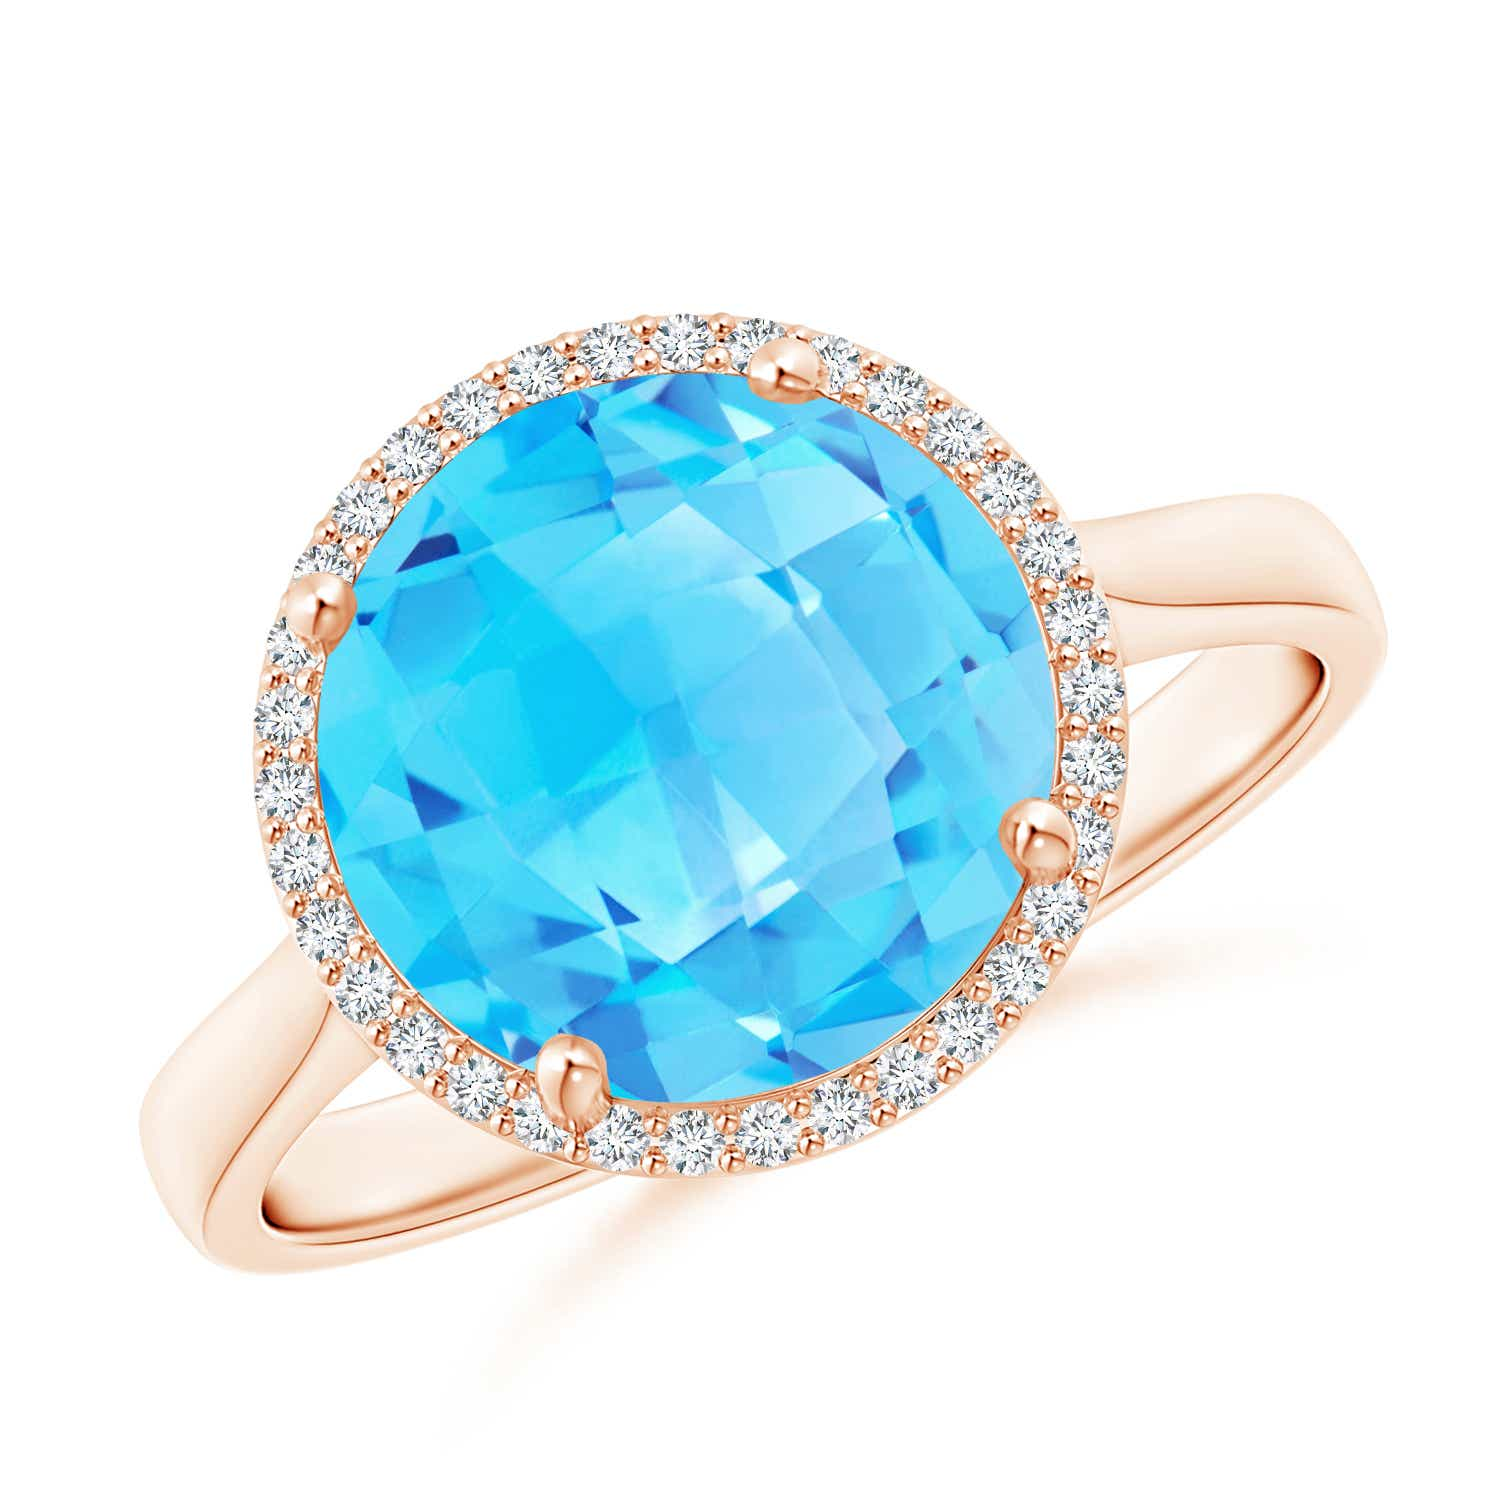 Angara Prong Set Round Swiss Blue Topaz Cocktail Ring v1Crv8SeyO